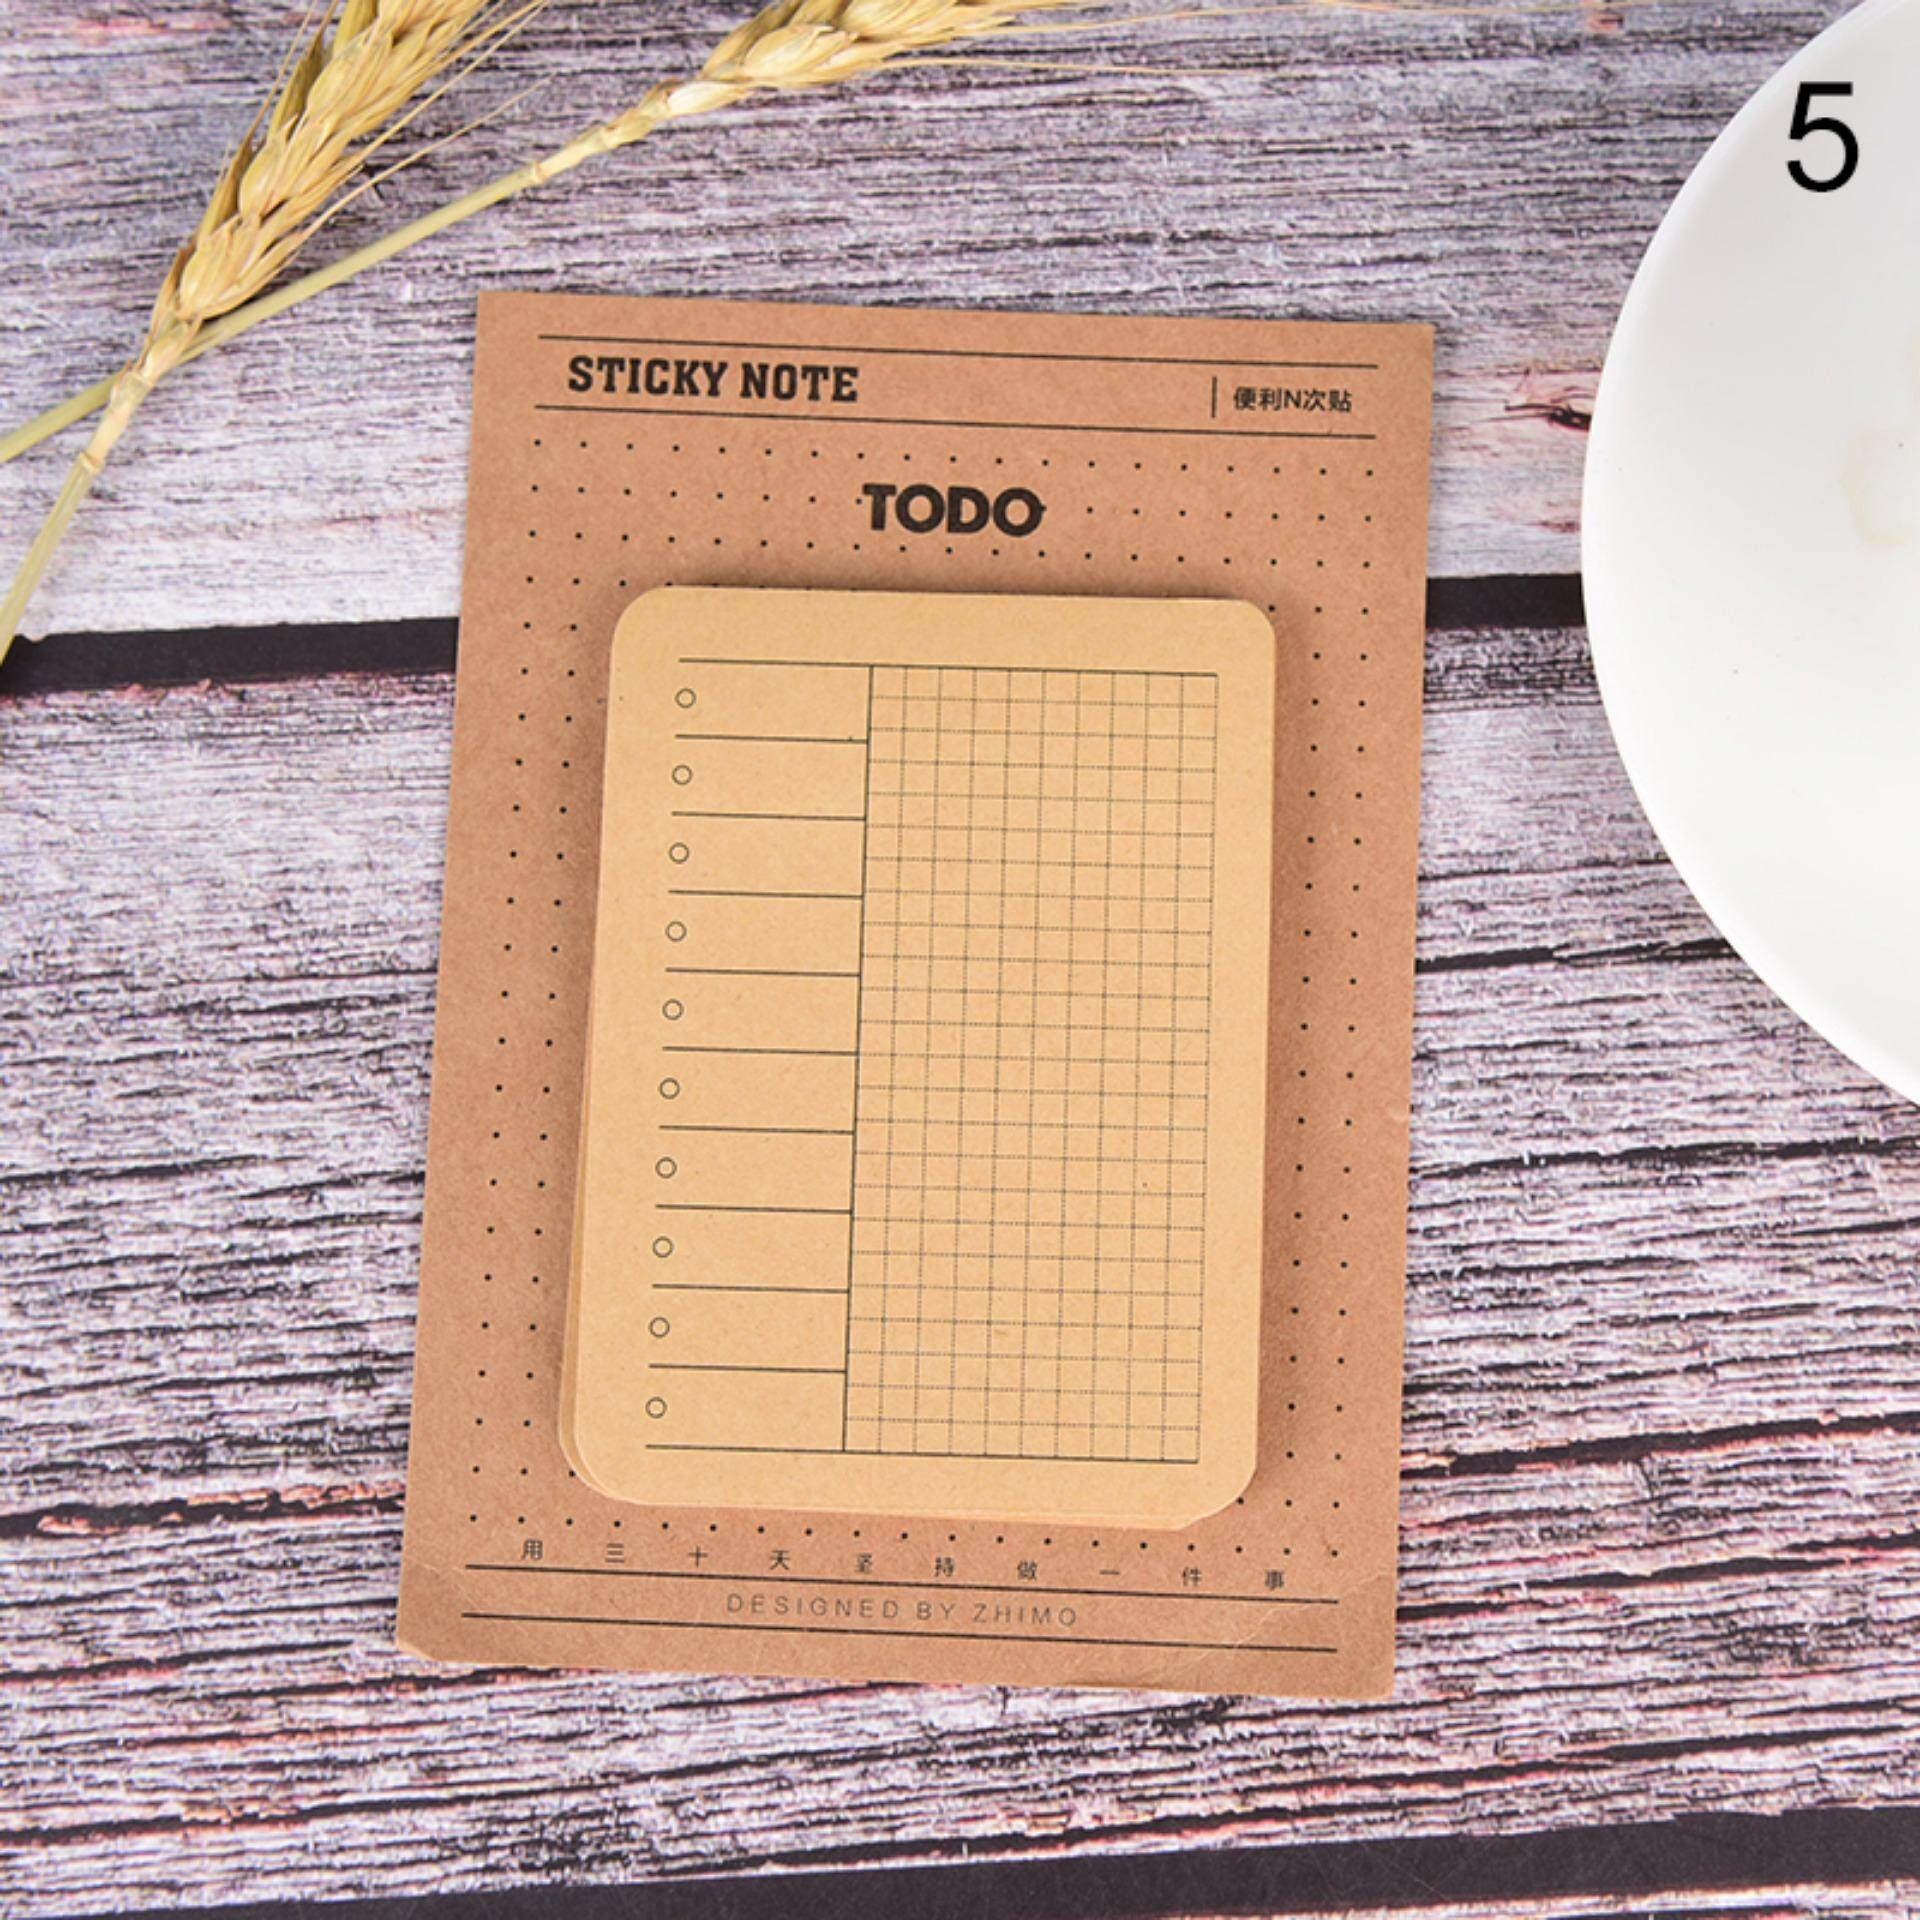 Sissi Week Plan List Grid Multi-Function Self-Adhesive N Times Memo Pad Sticky Mini Type:n1 By Sissi Princess.